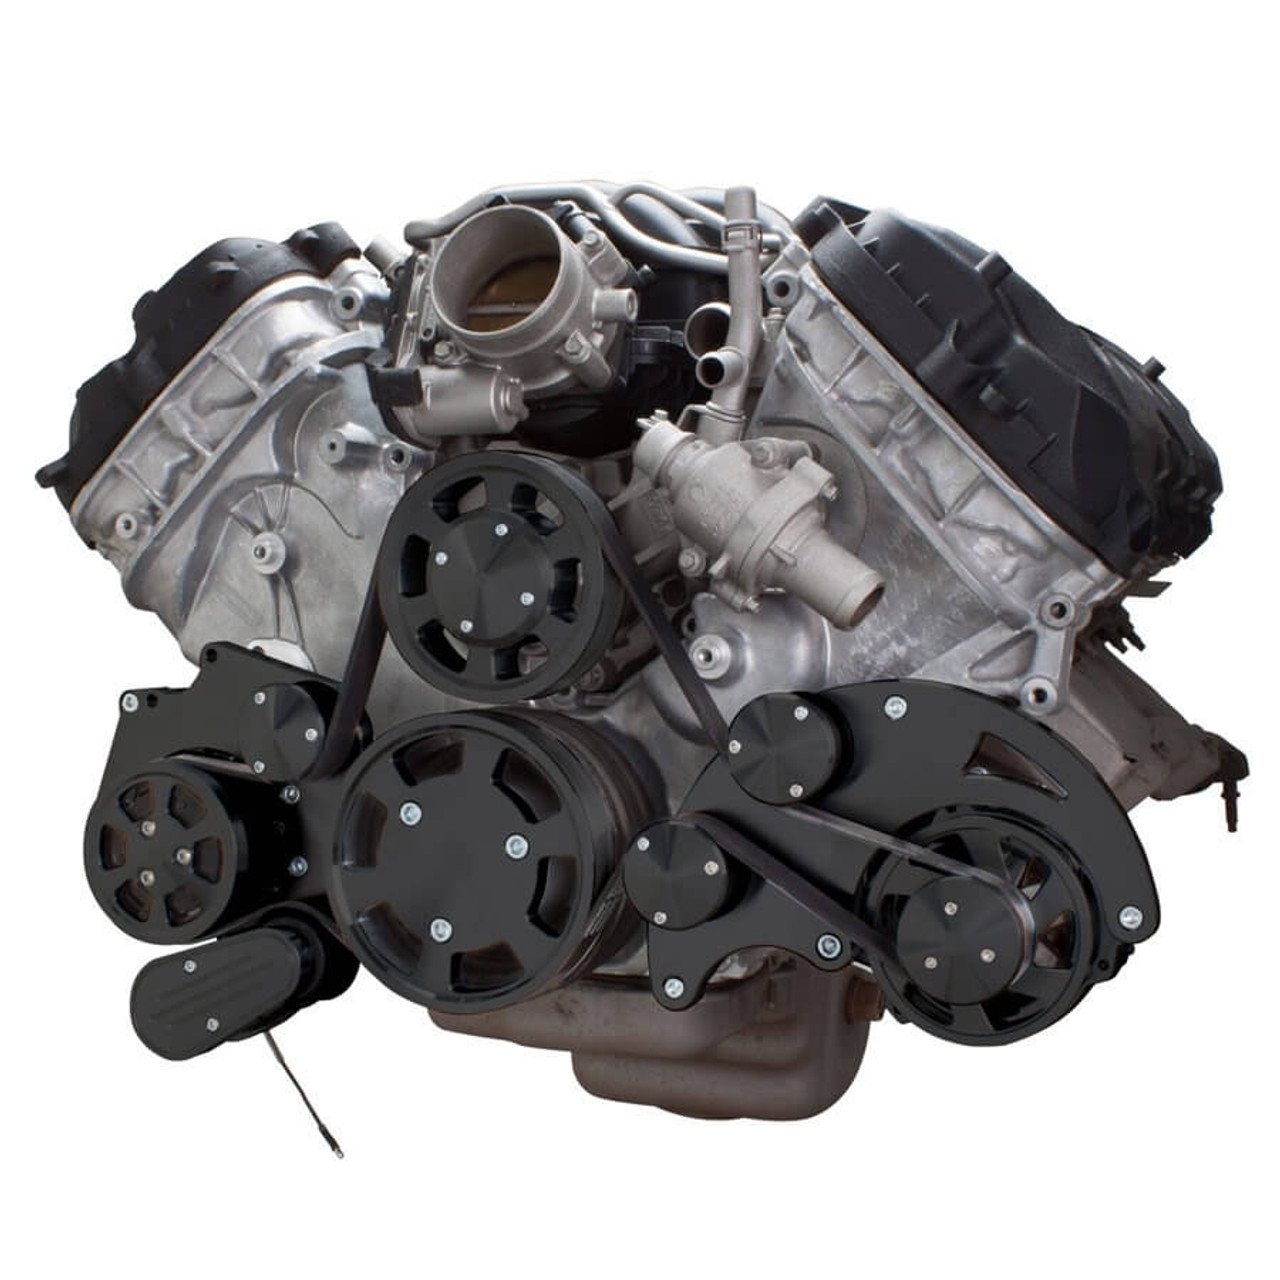 hight resolution of stealth black serpentine system for ford coyote 5 0 ac alternator